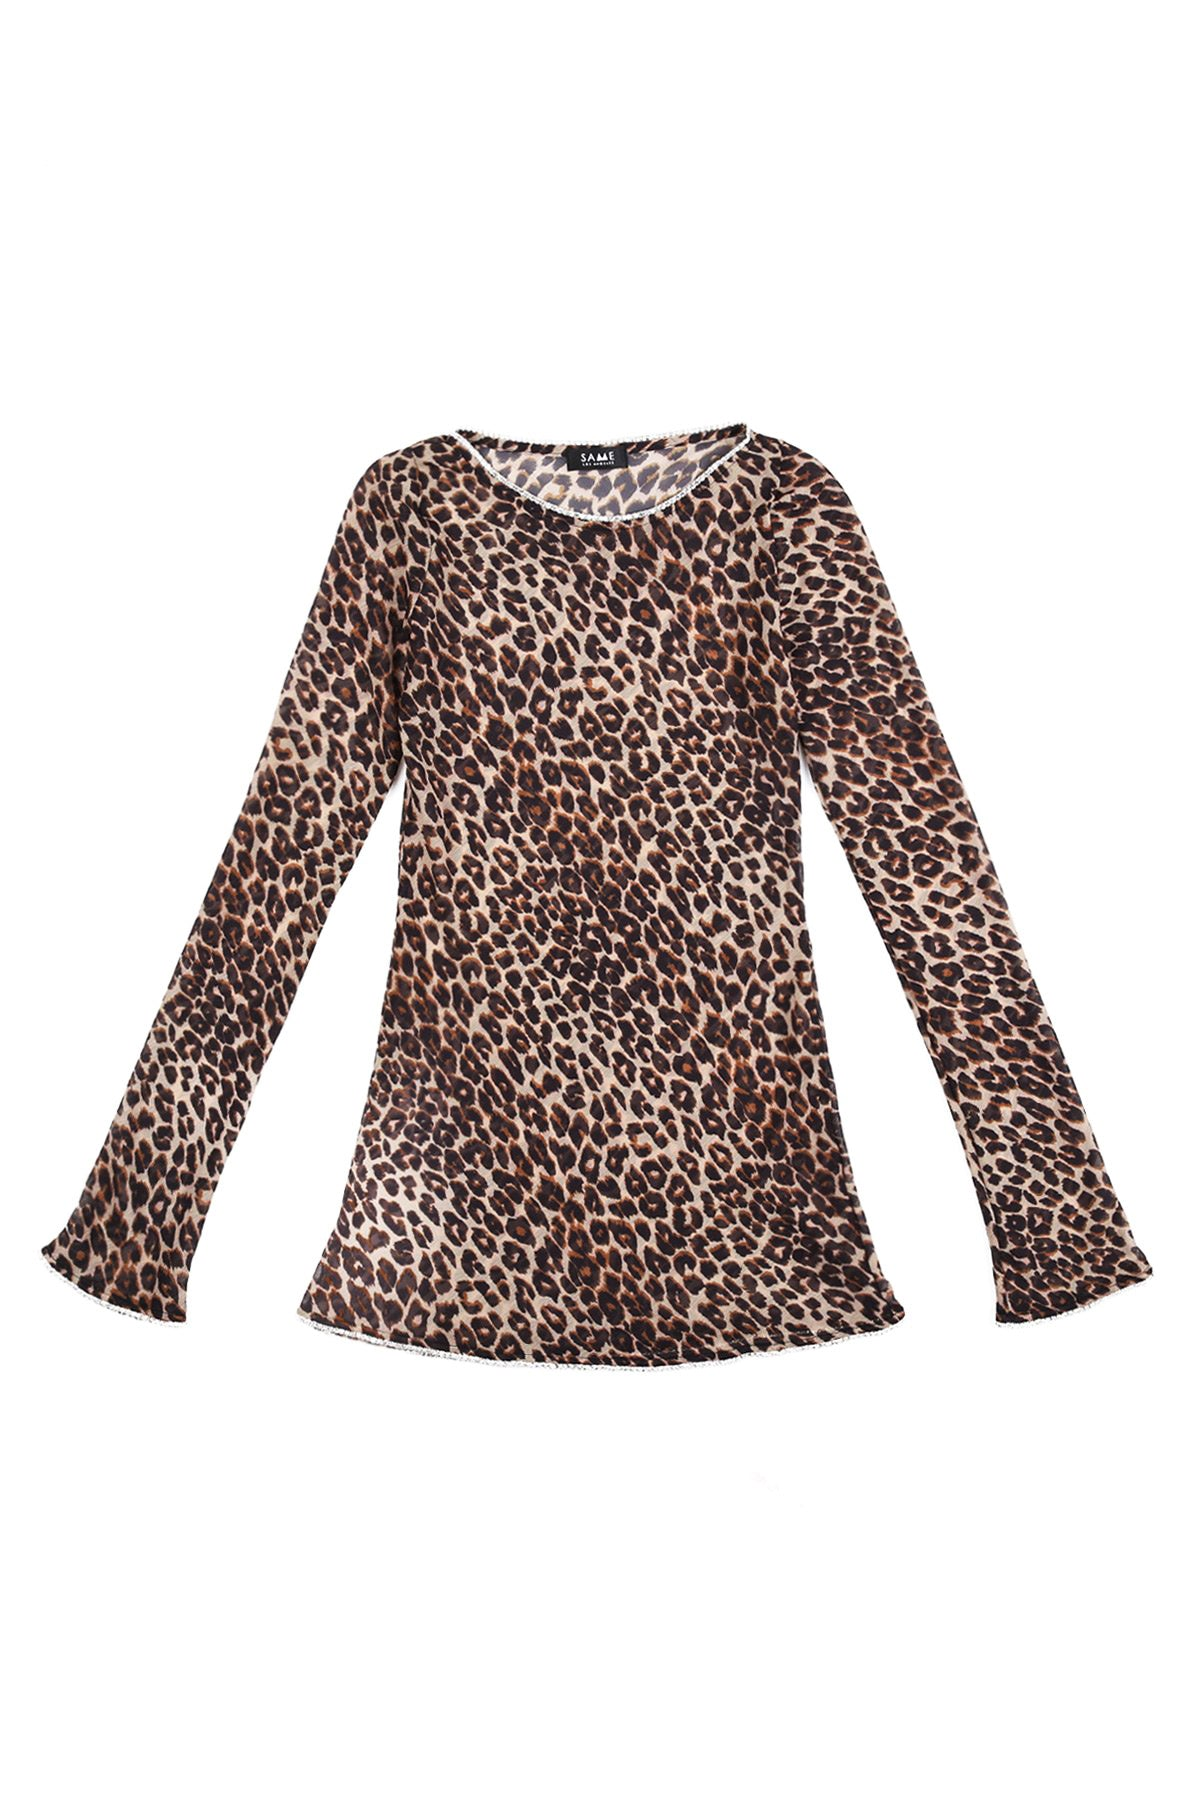 The Baby Girl Dress (Cheetah/Crystal Trim)